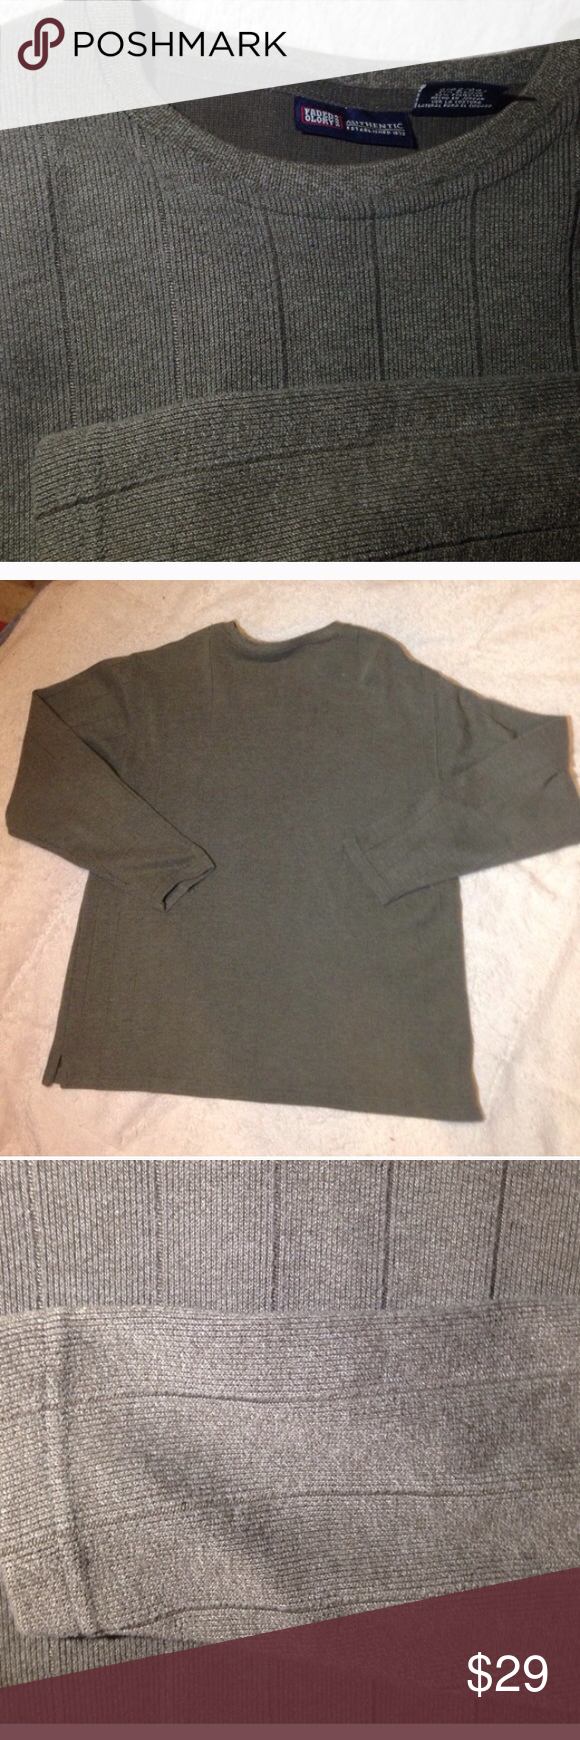 Men's size large green pullover sweatshirt Faded glory men's size large green pullover sweatshirt similar to the better sweater weave. Excellent condition super comfortable never worn Faded Glory Shirts Sweatshirts & Hoodies